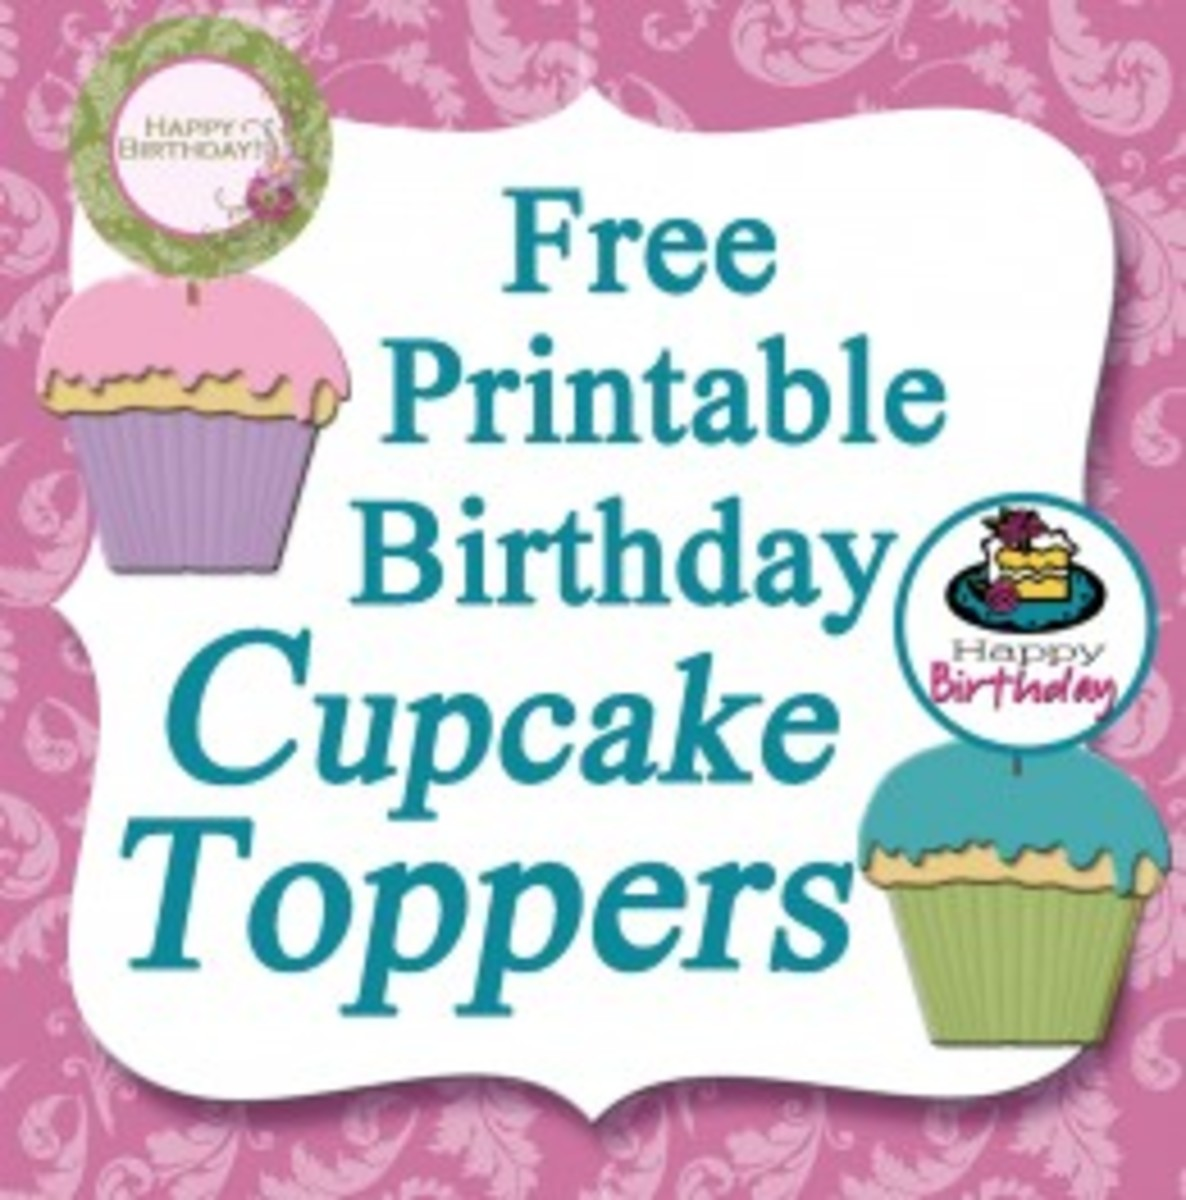 Free birthday cupcake toppers